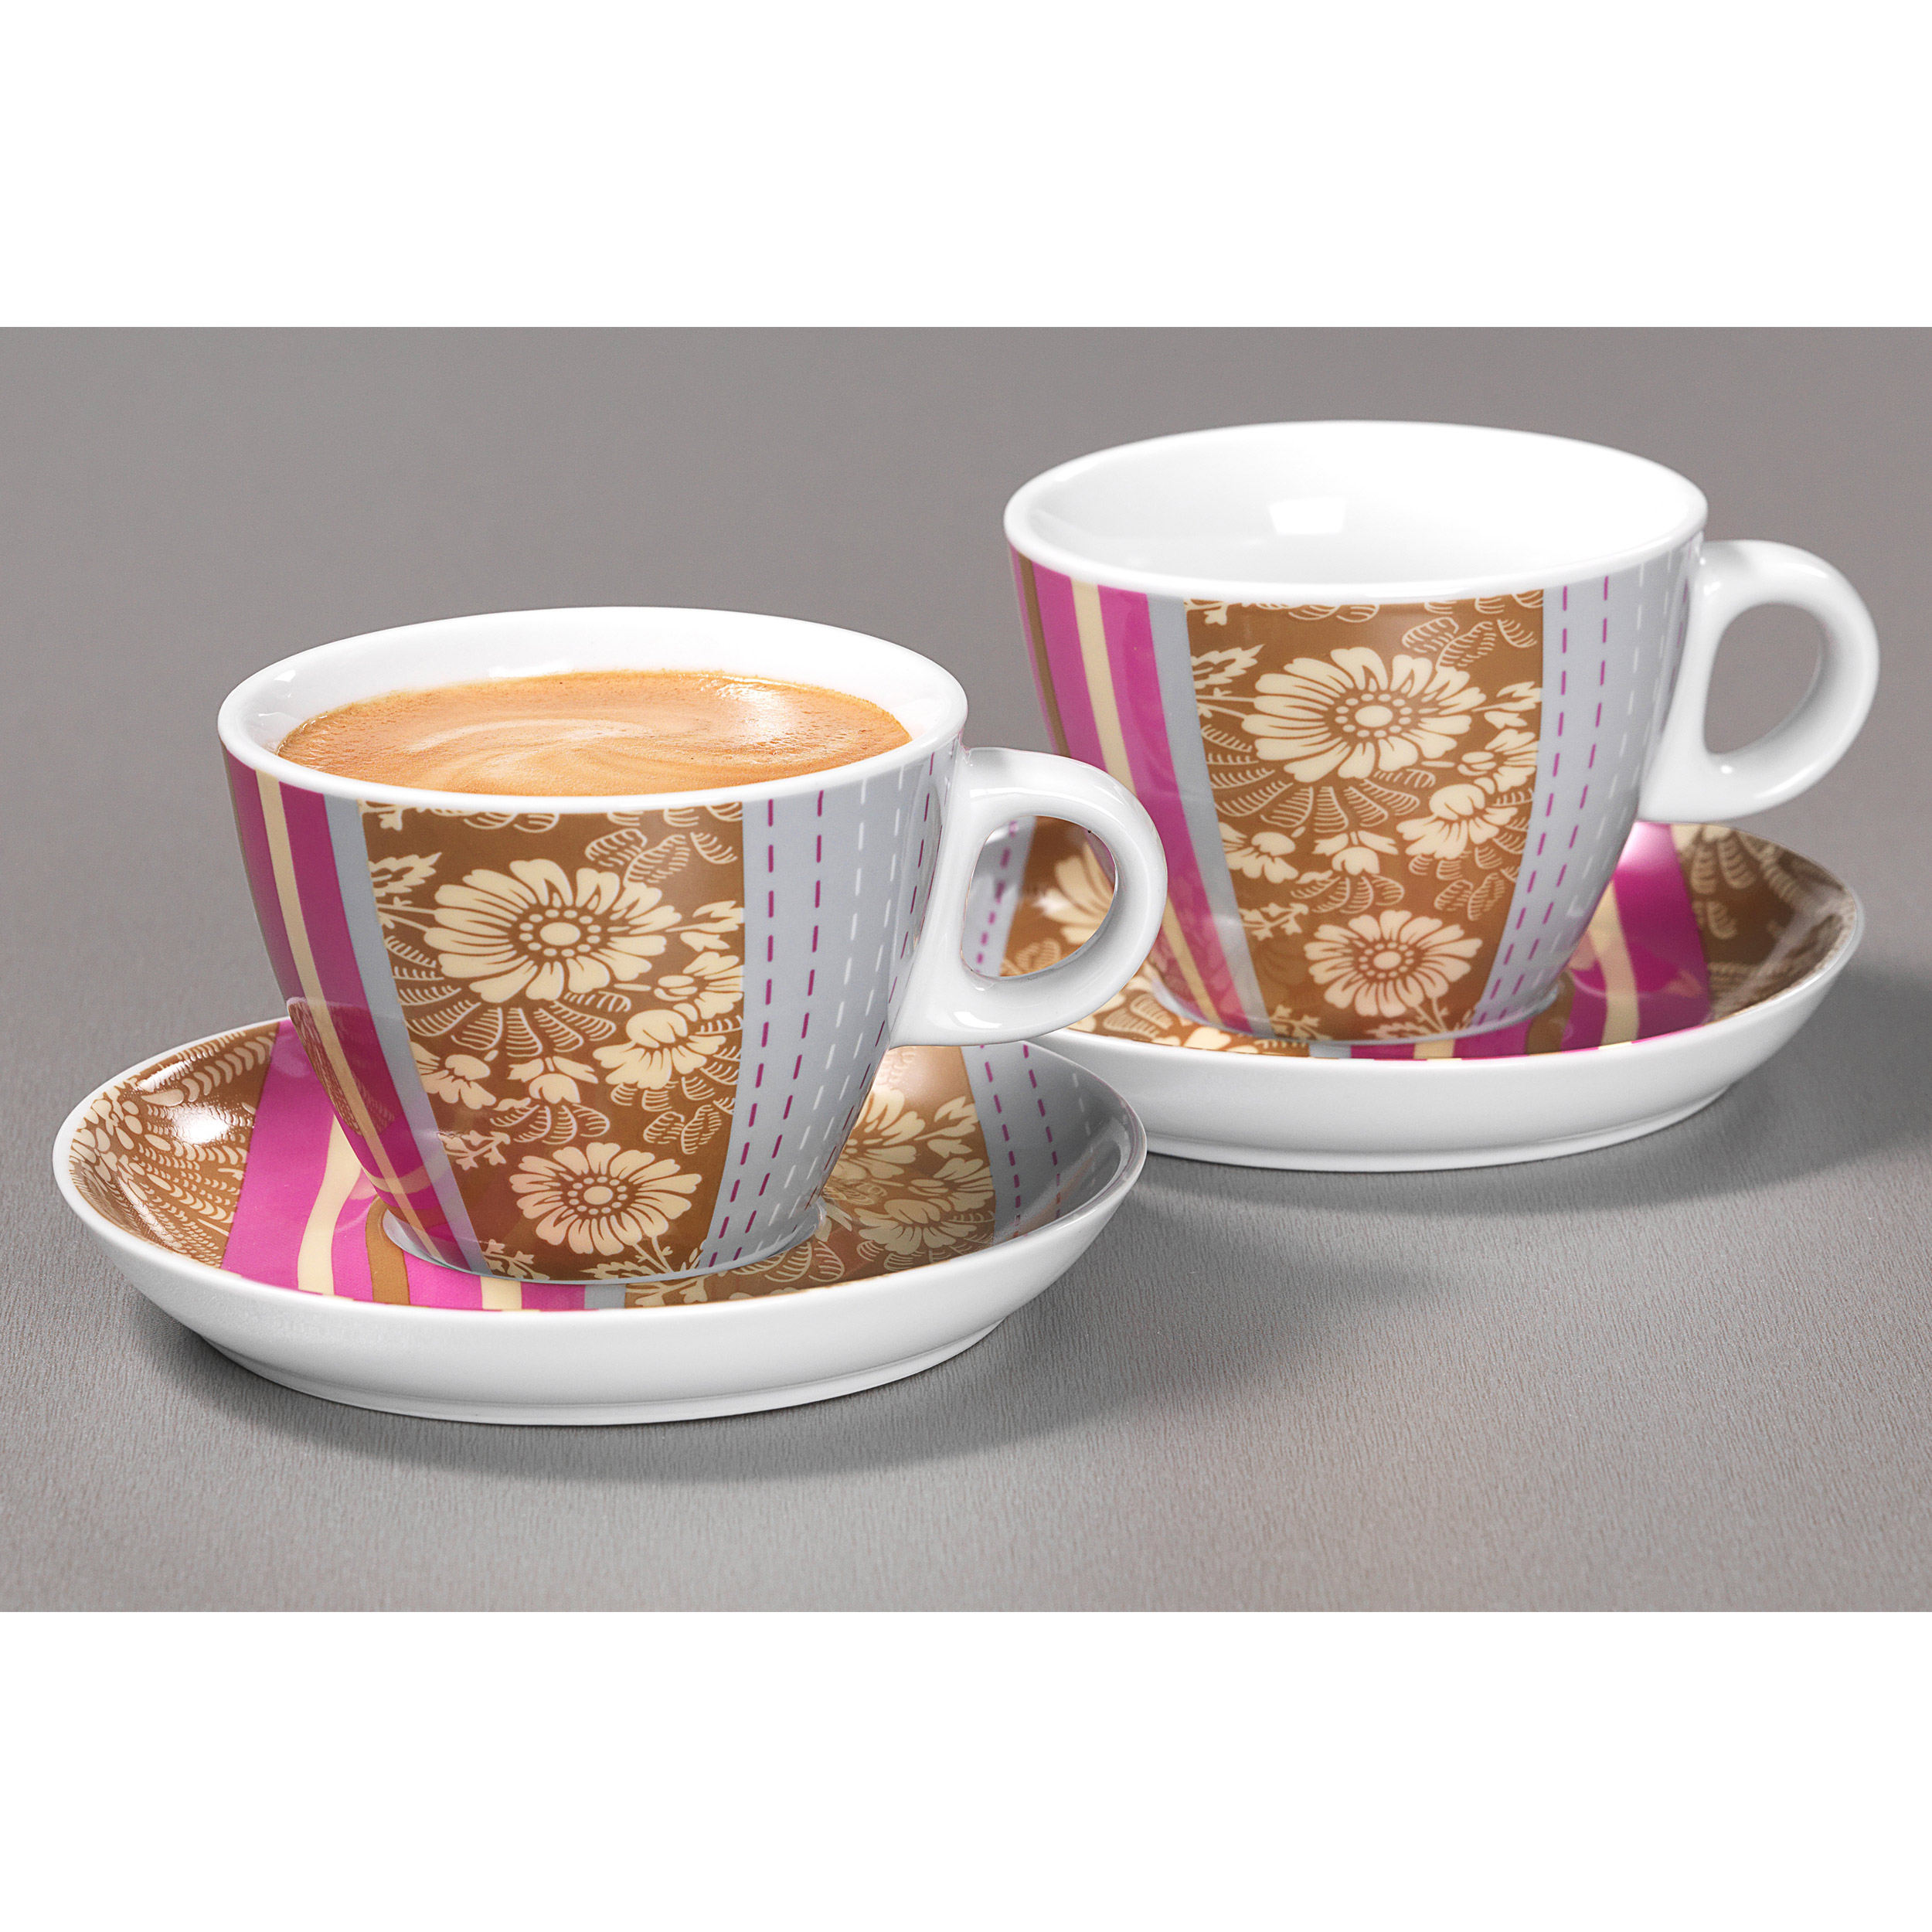 ritzenhoff breker florella cappuccino set of 2pc high quality porcelain dishwasher safe. Black Bedroom Furniture Sets. Home Design Ideas